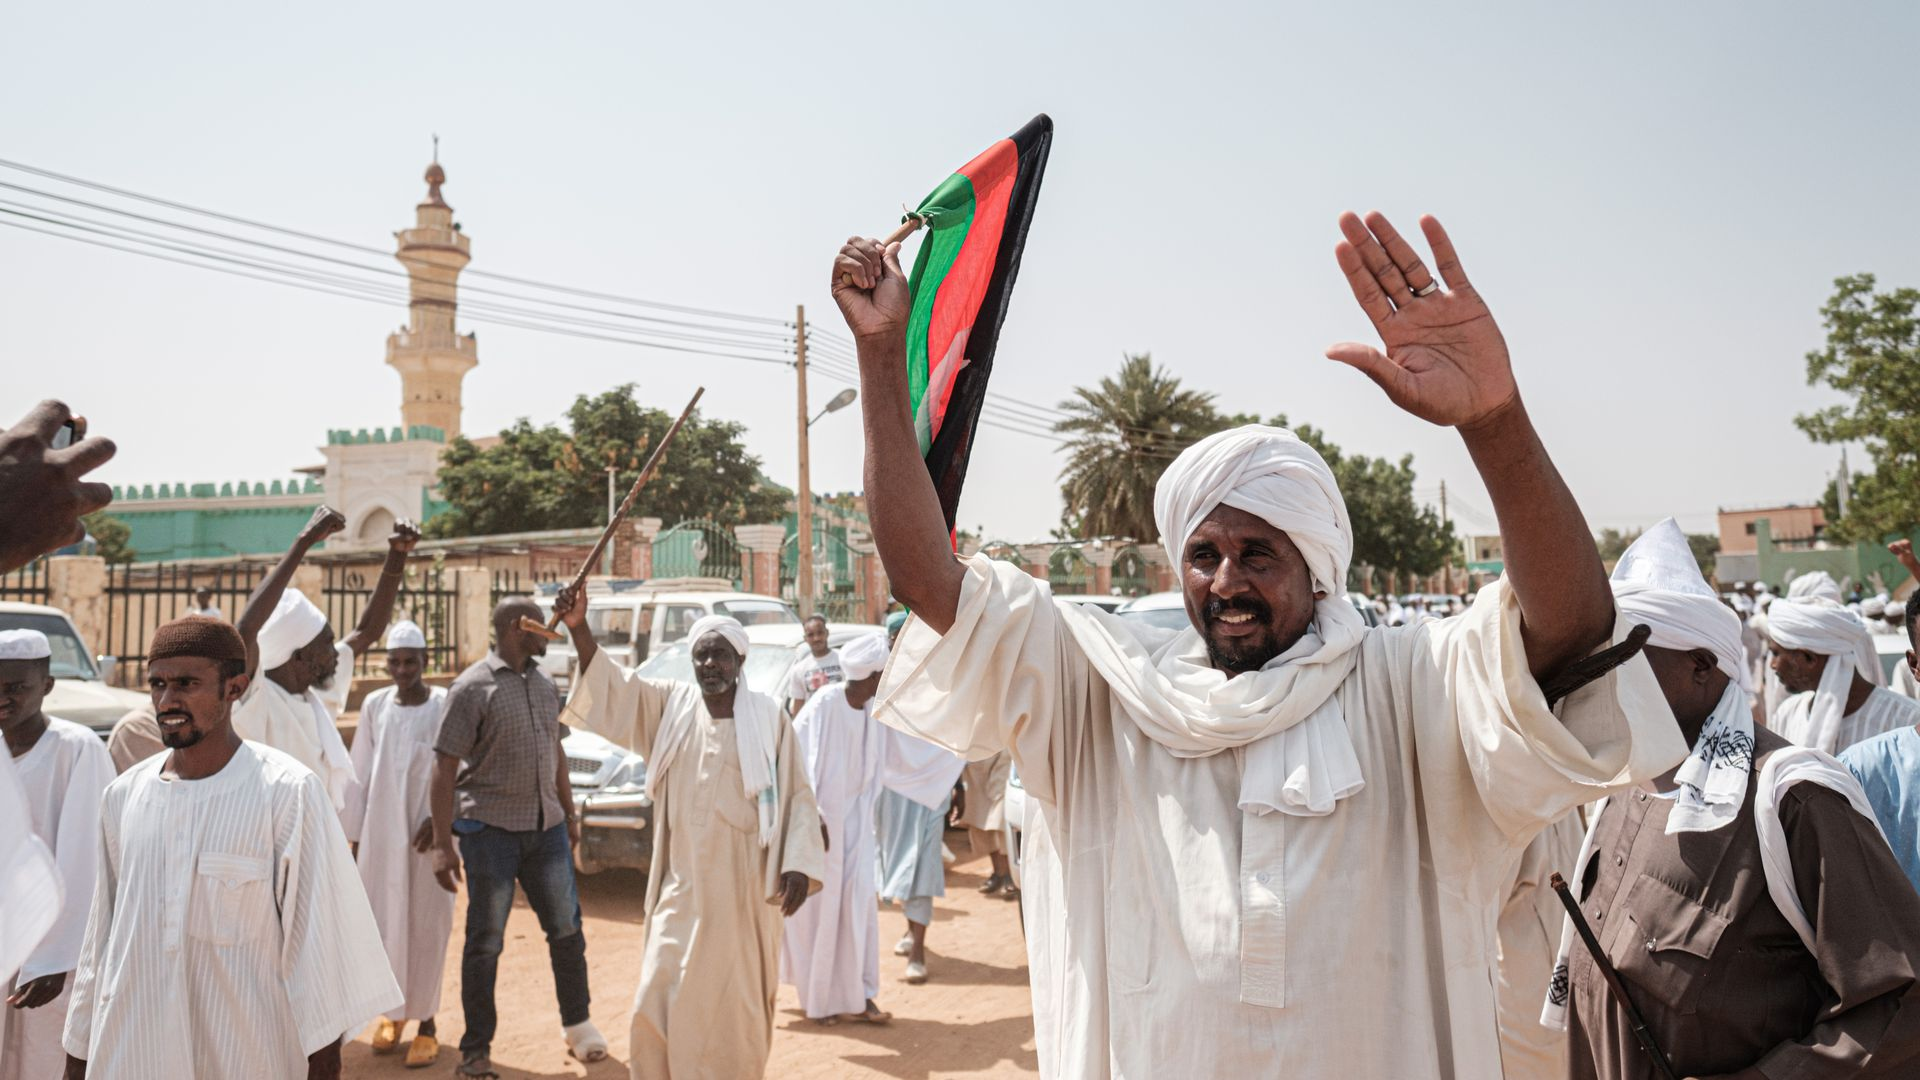 Sudanese citizens leaving a mosque after calls for an investigation into a protest that became violent